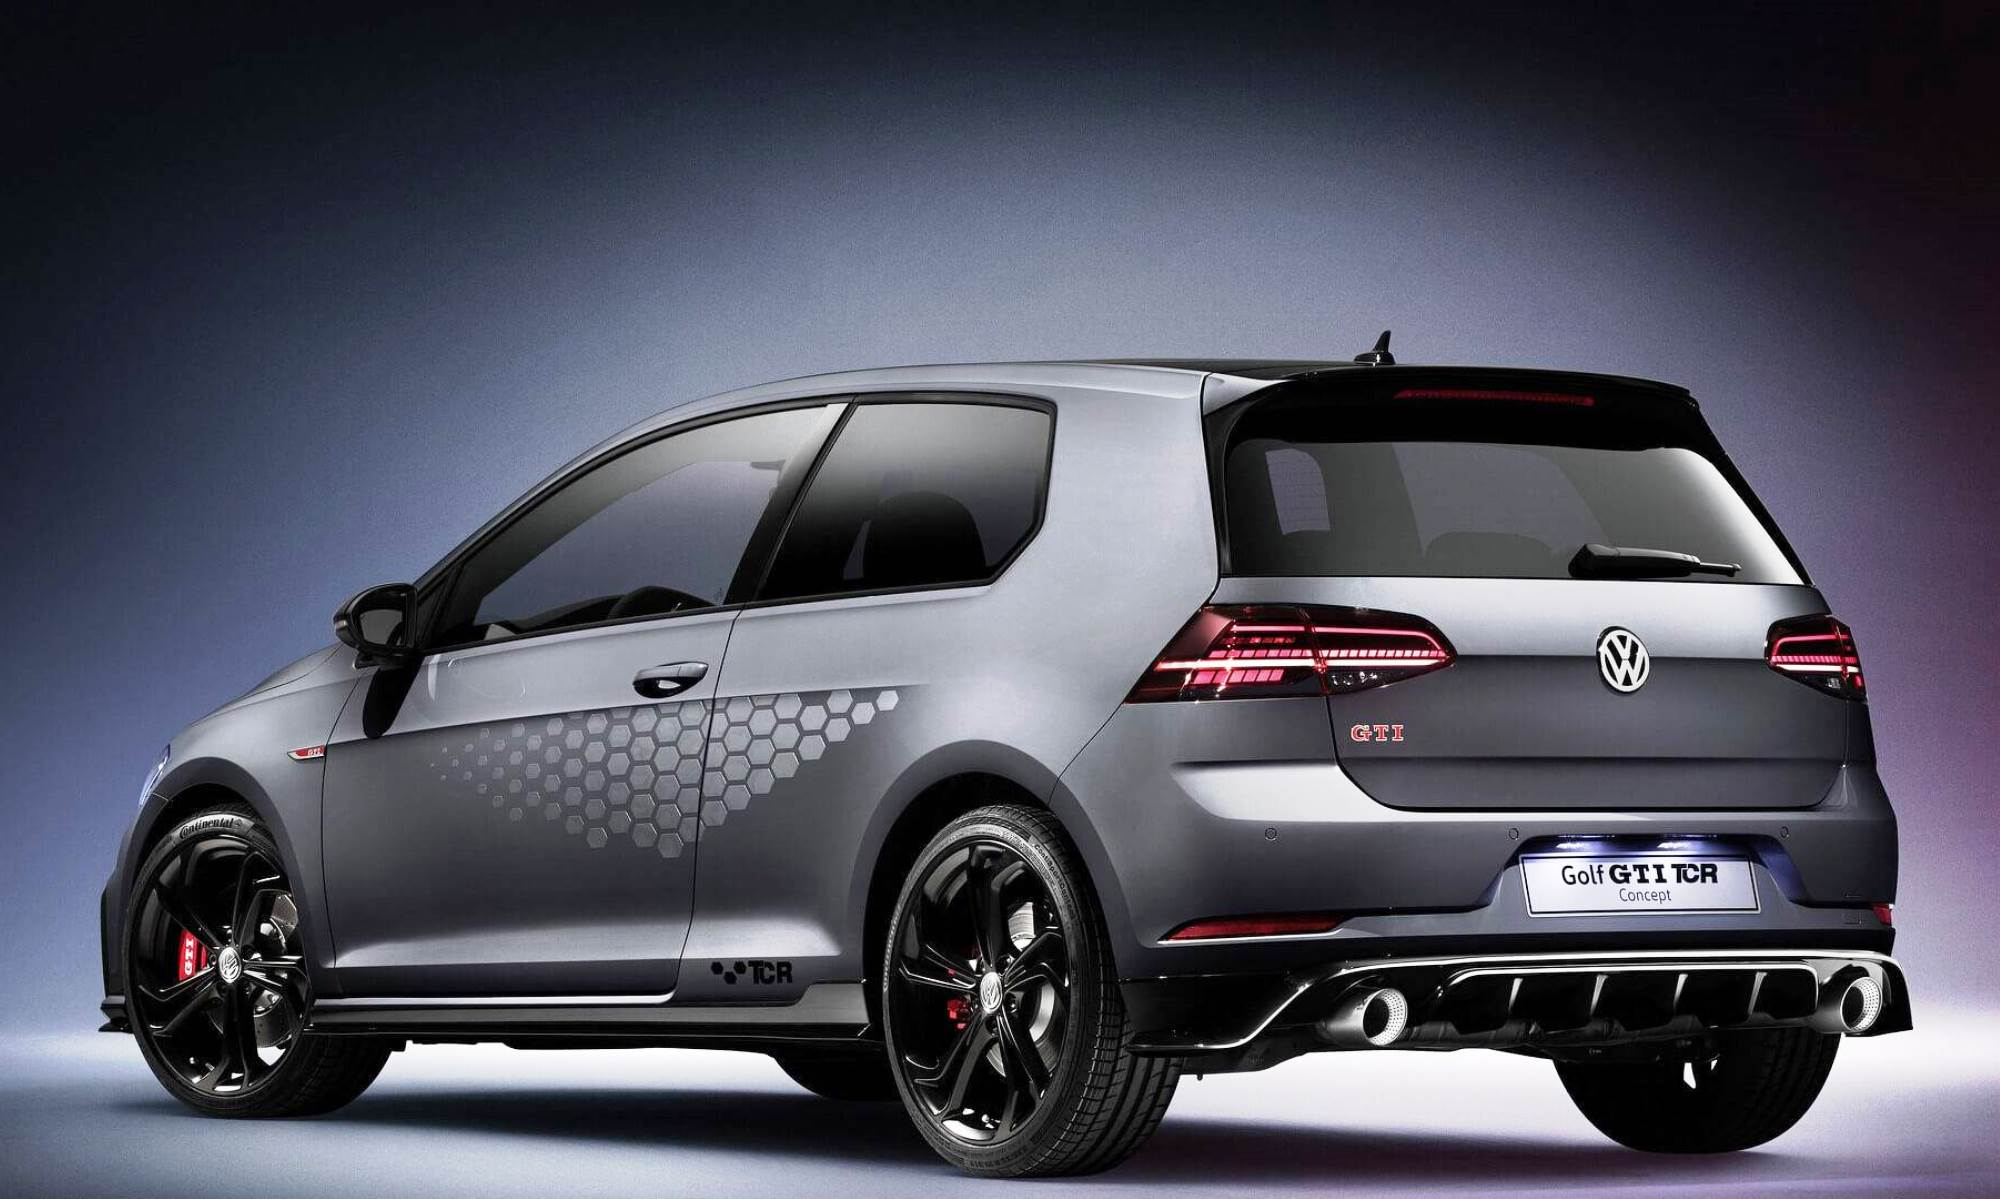 VW Golf GTI TCR rear